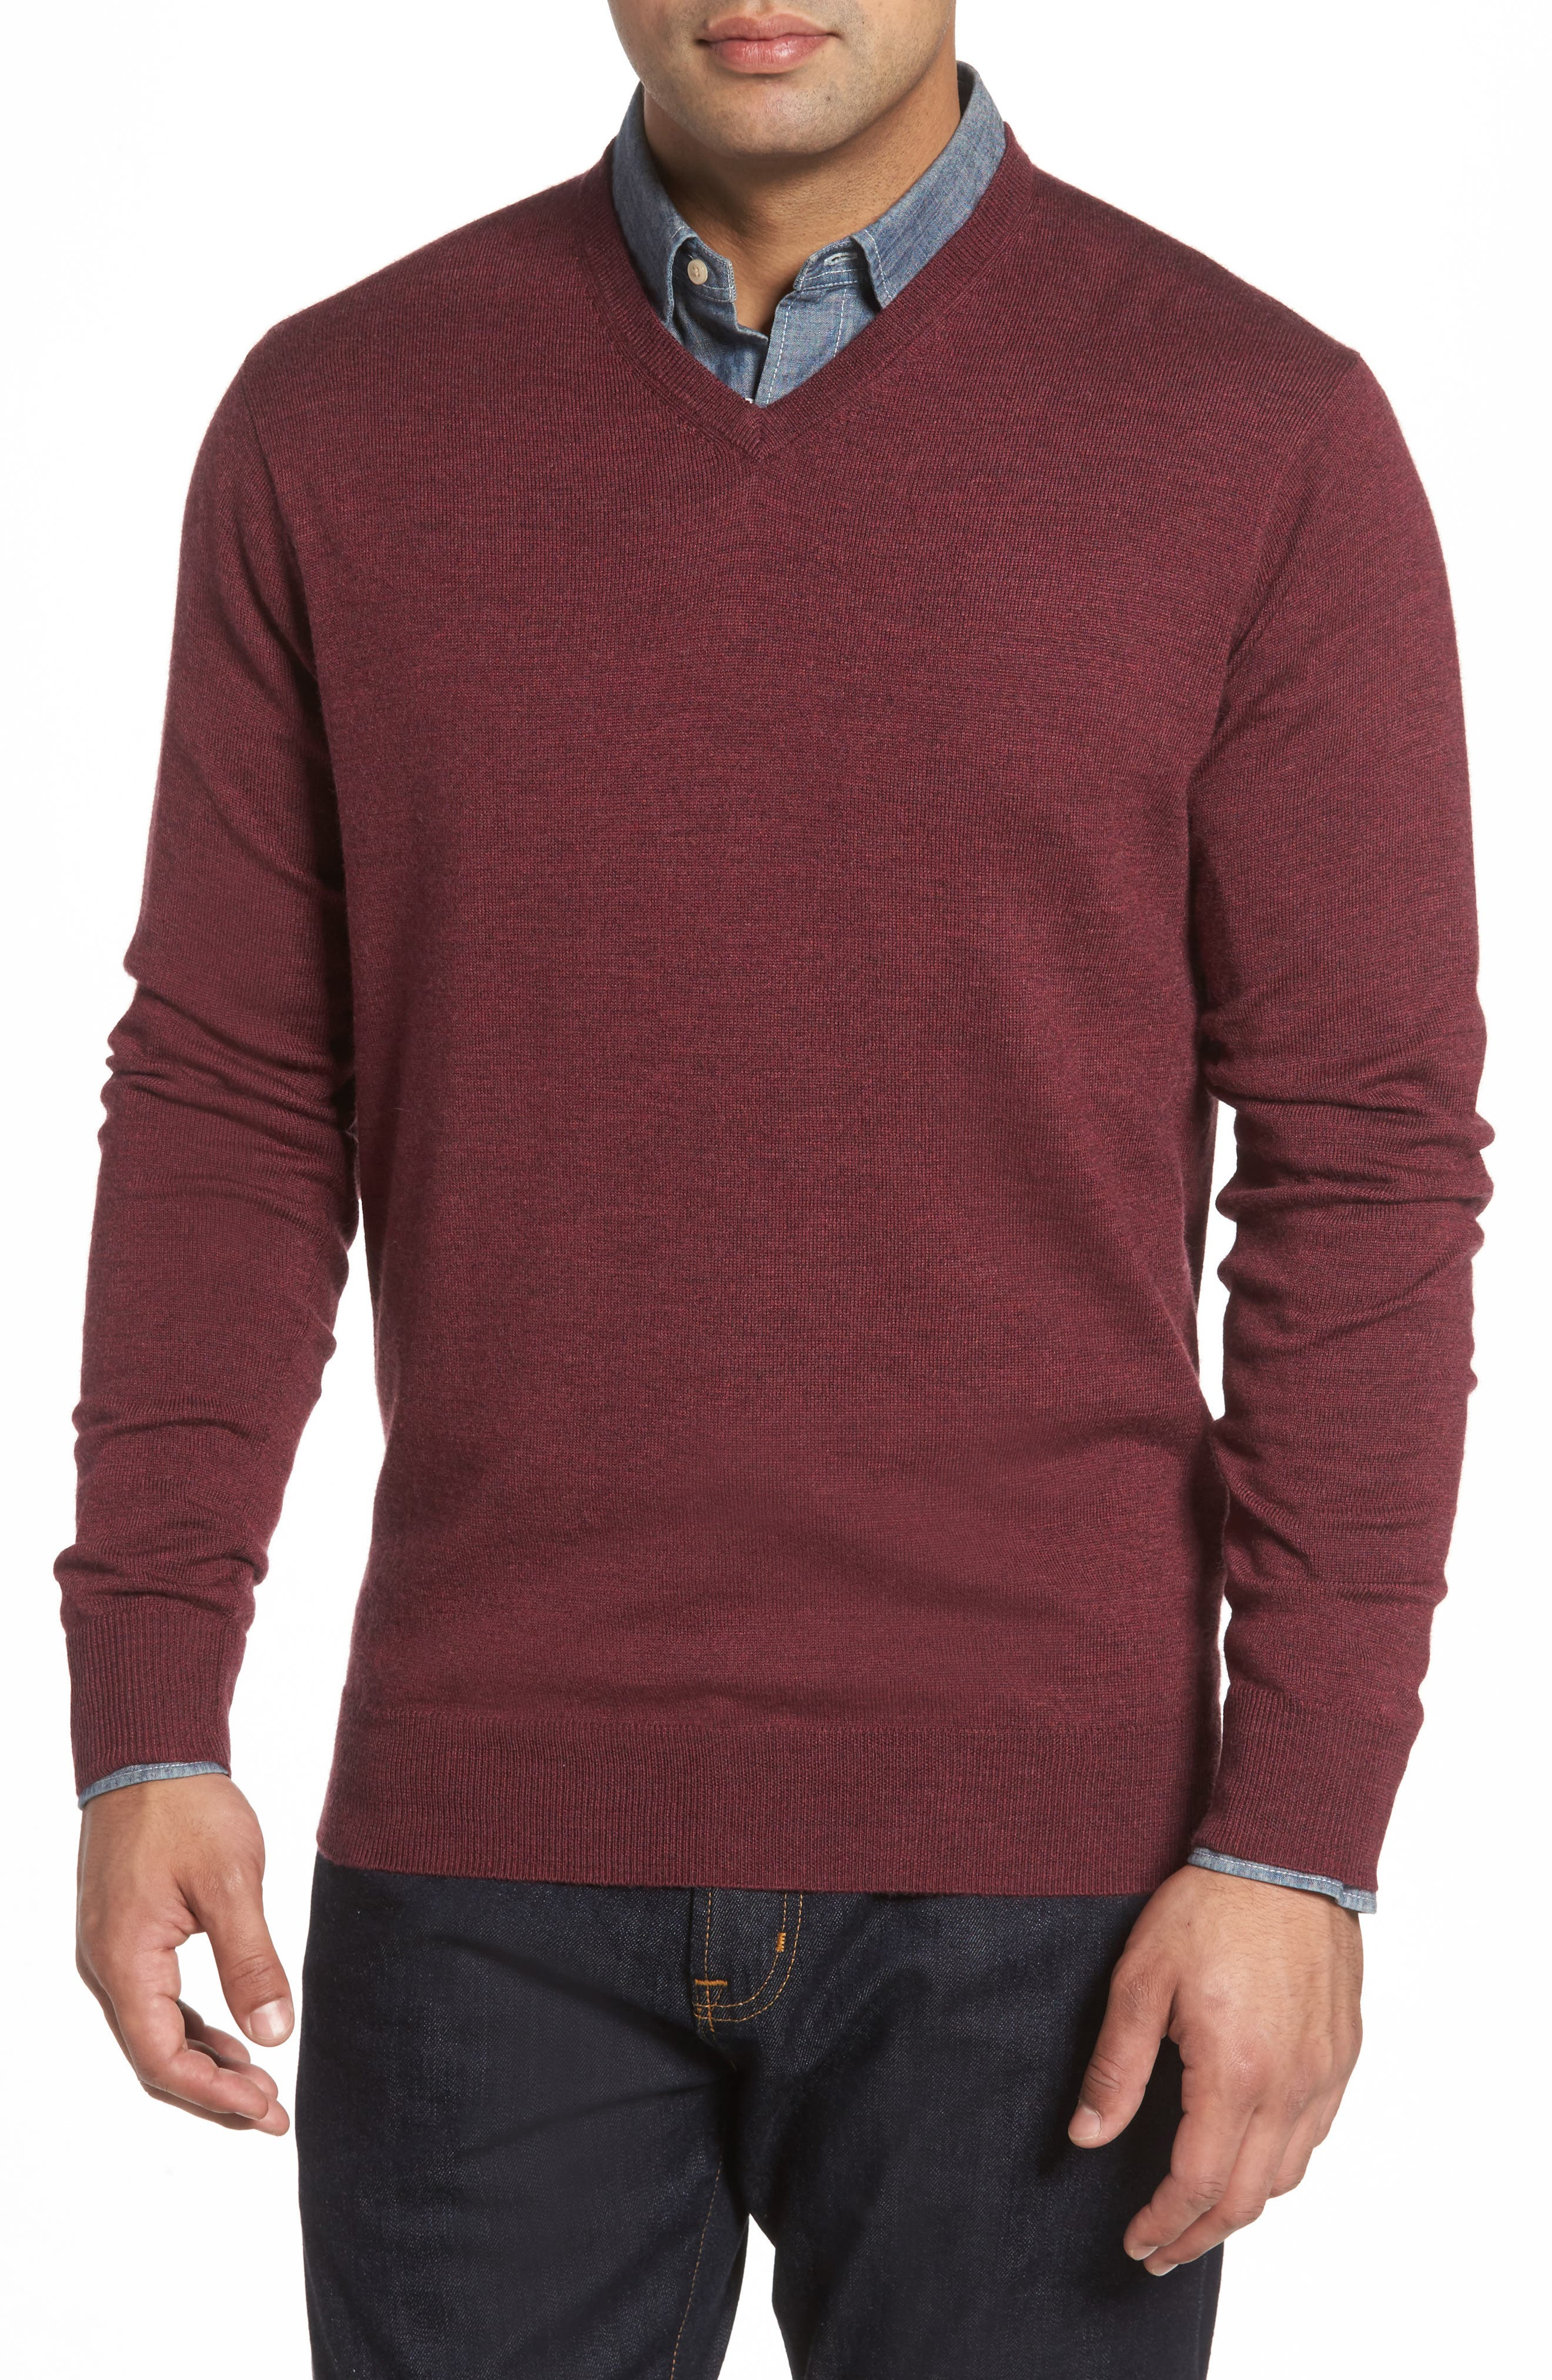 Peter Millar Merino Sweater